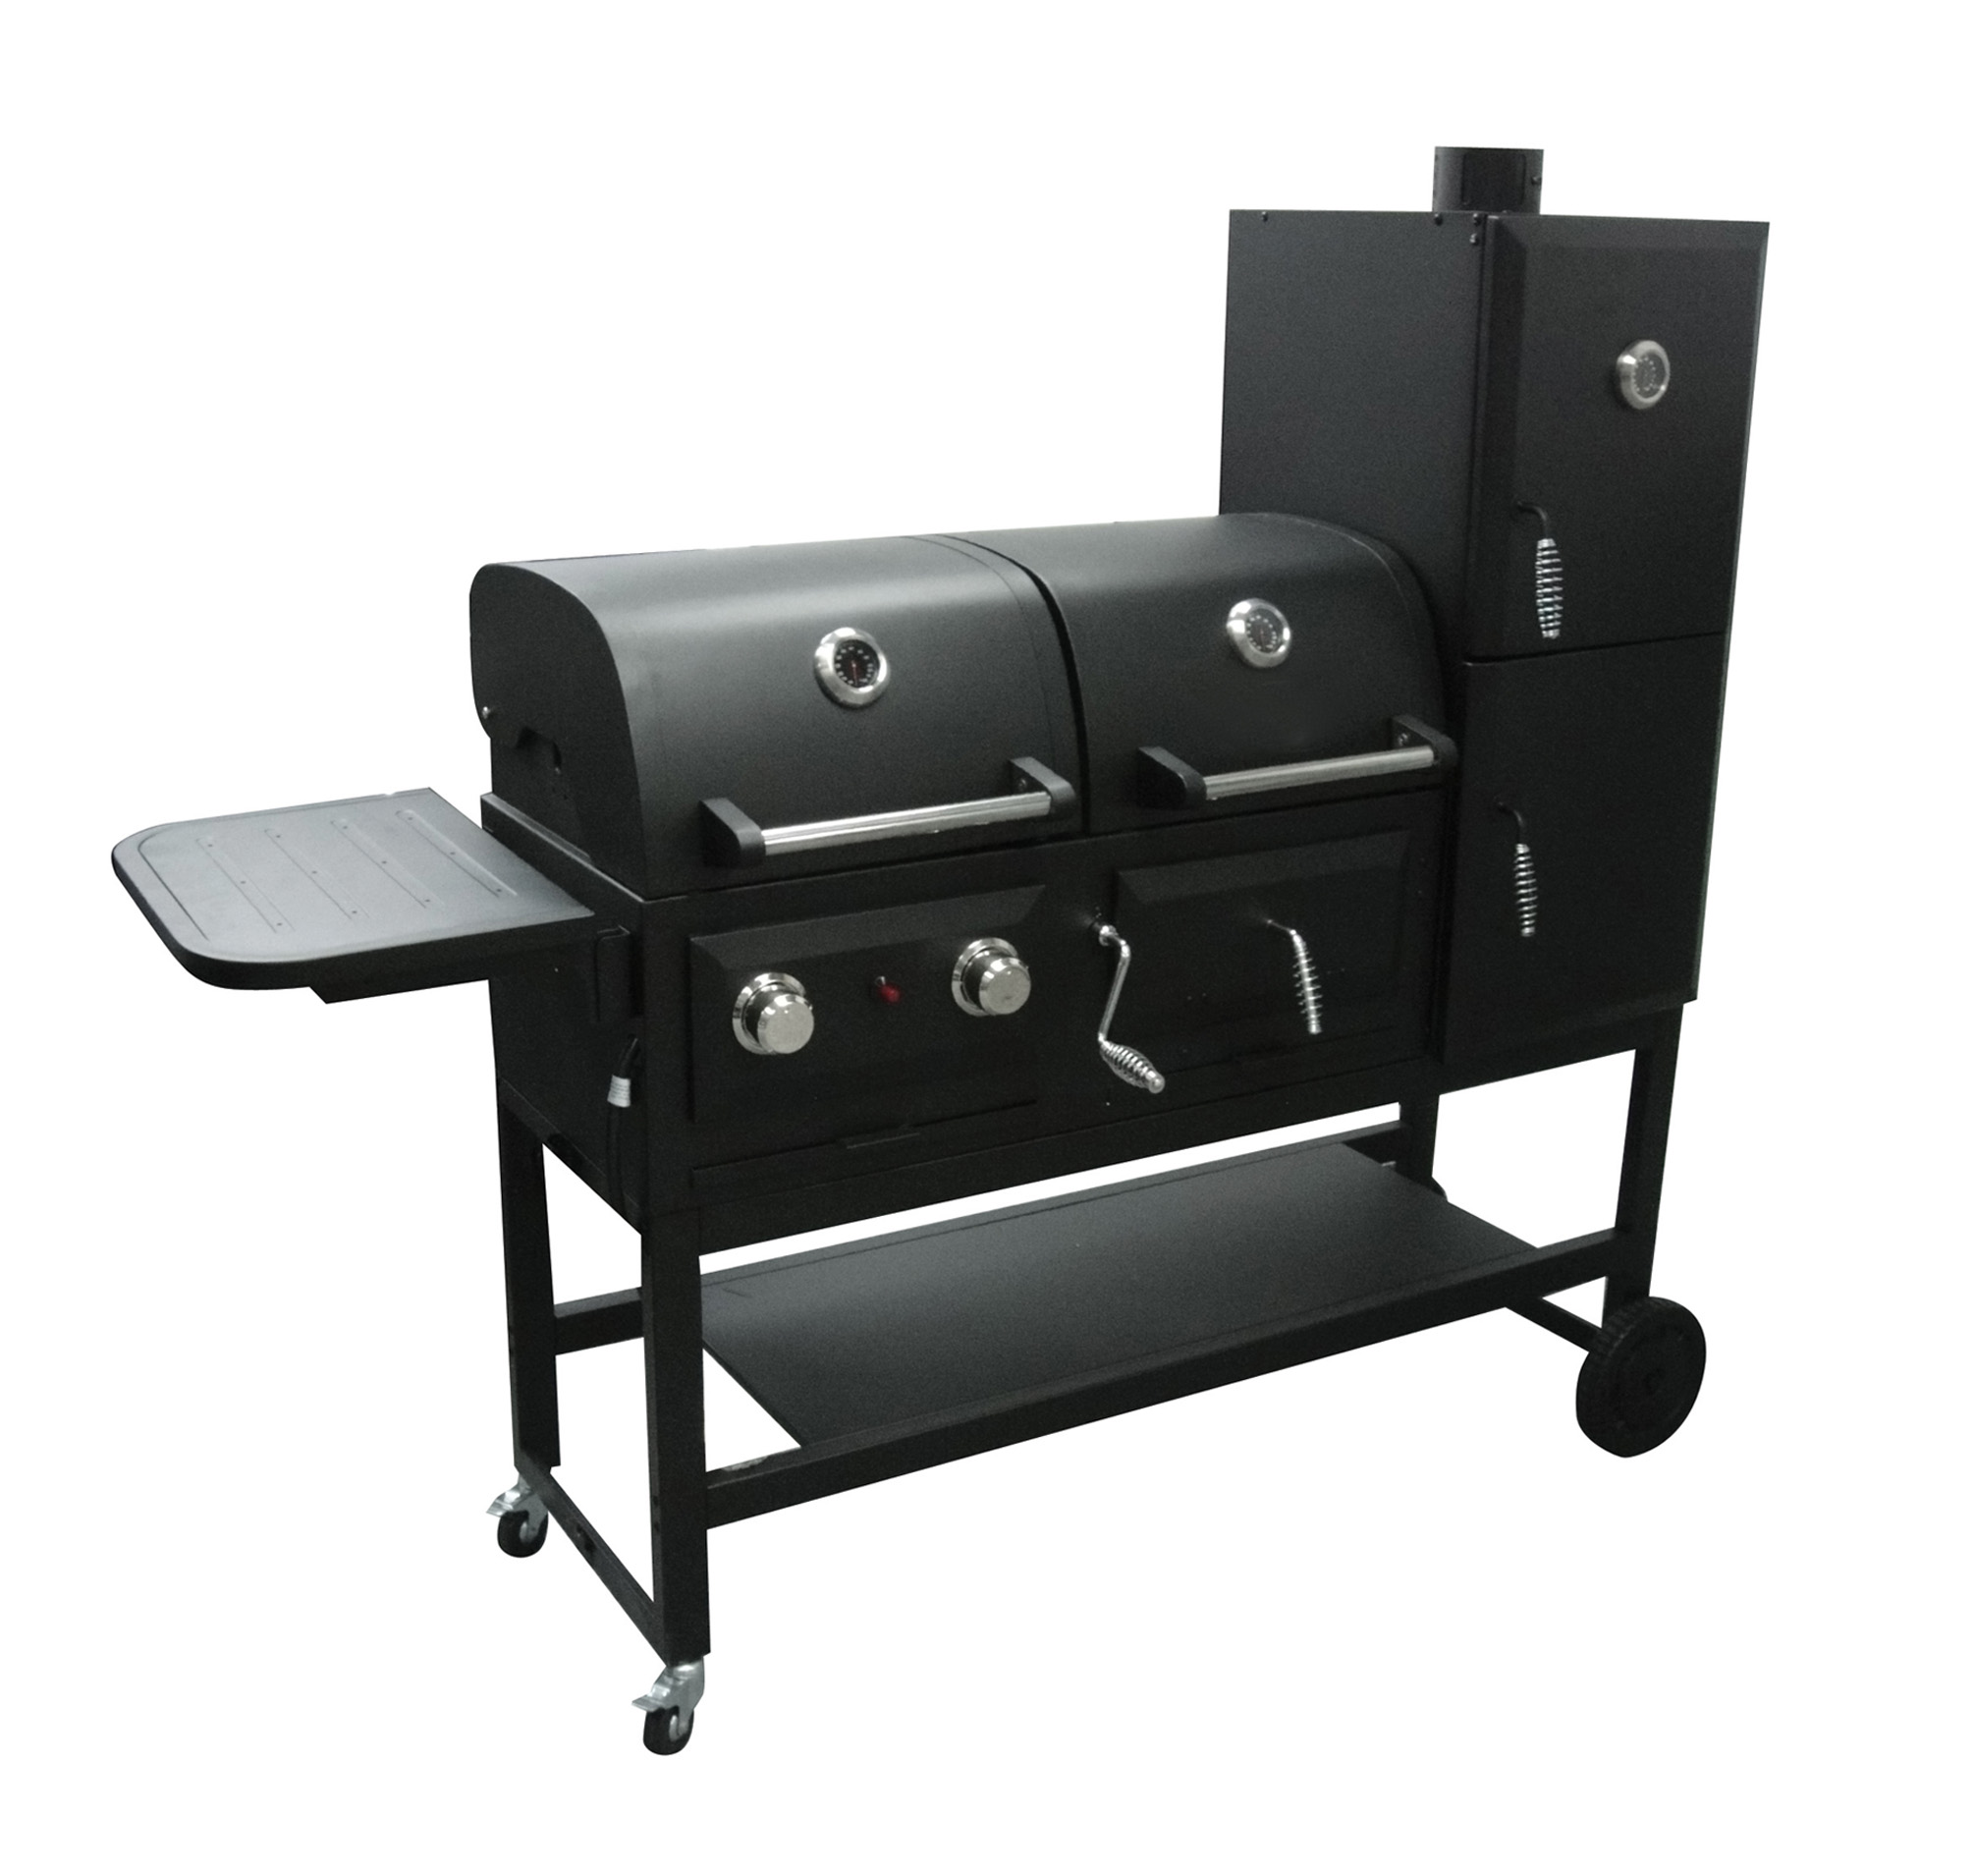 in 1 Gas & Charcoal Smoker Grill